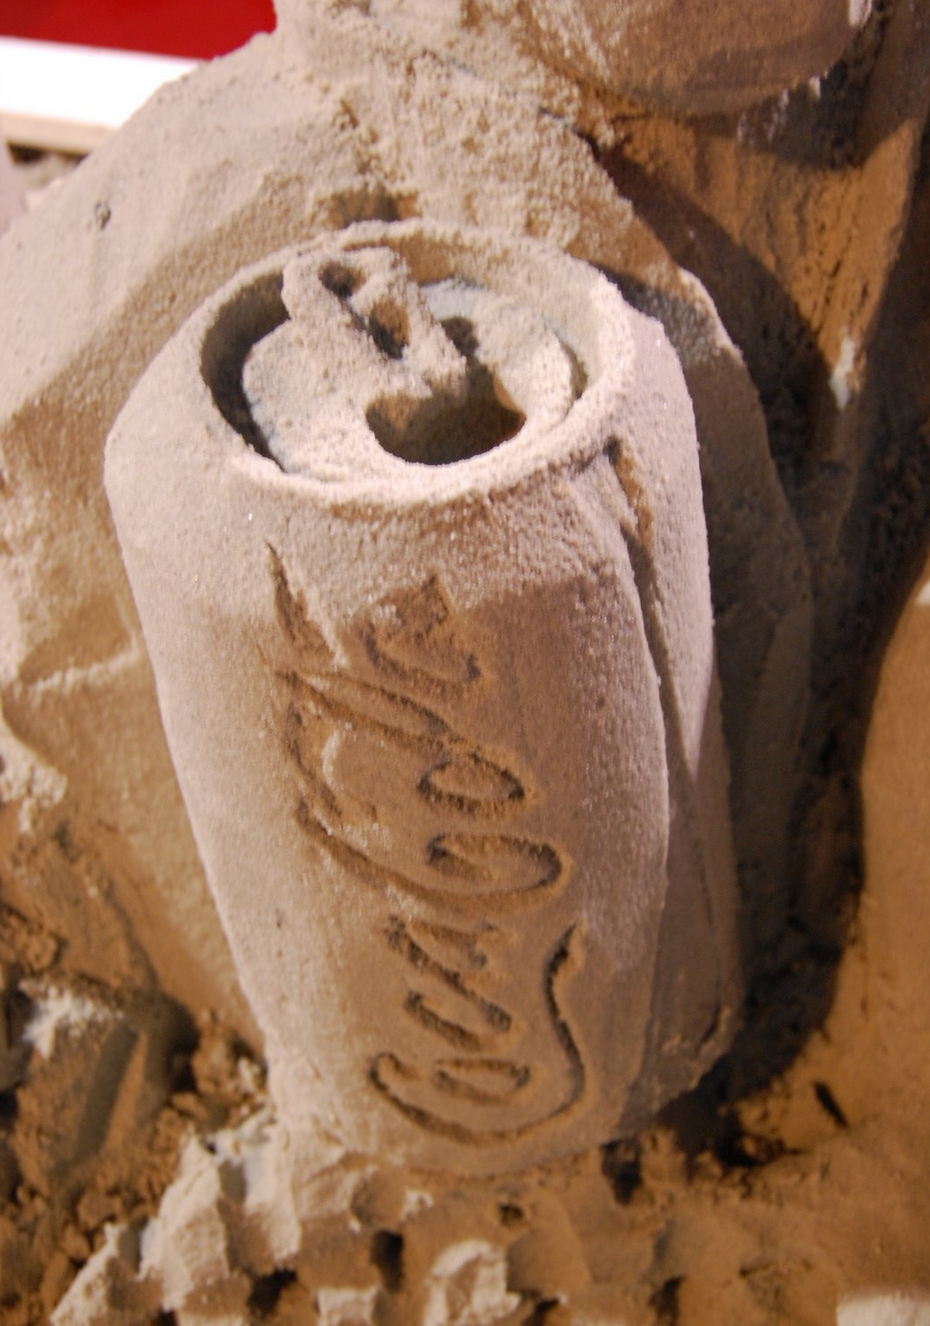 cocal cola sand work